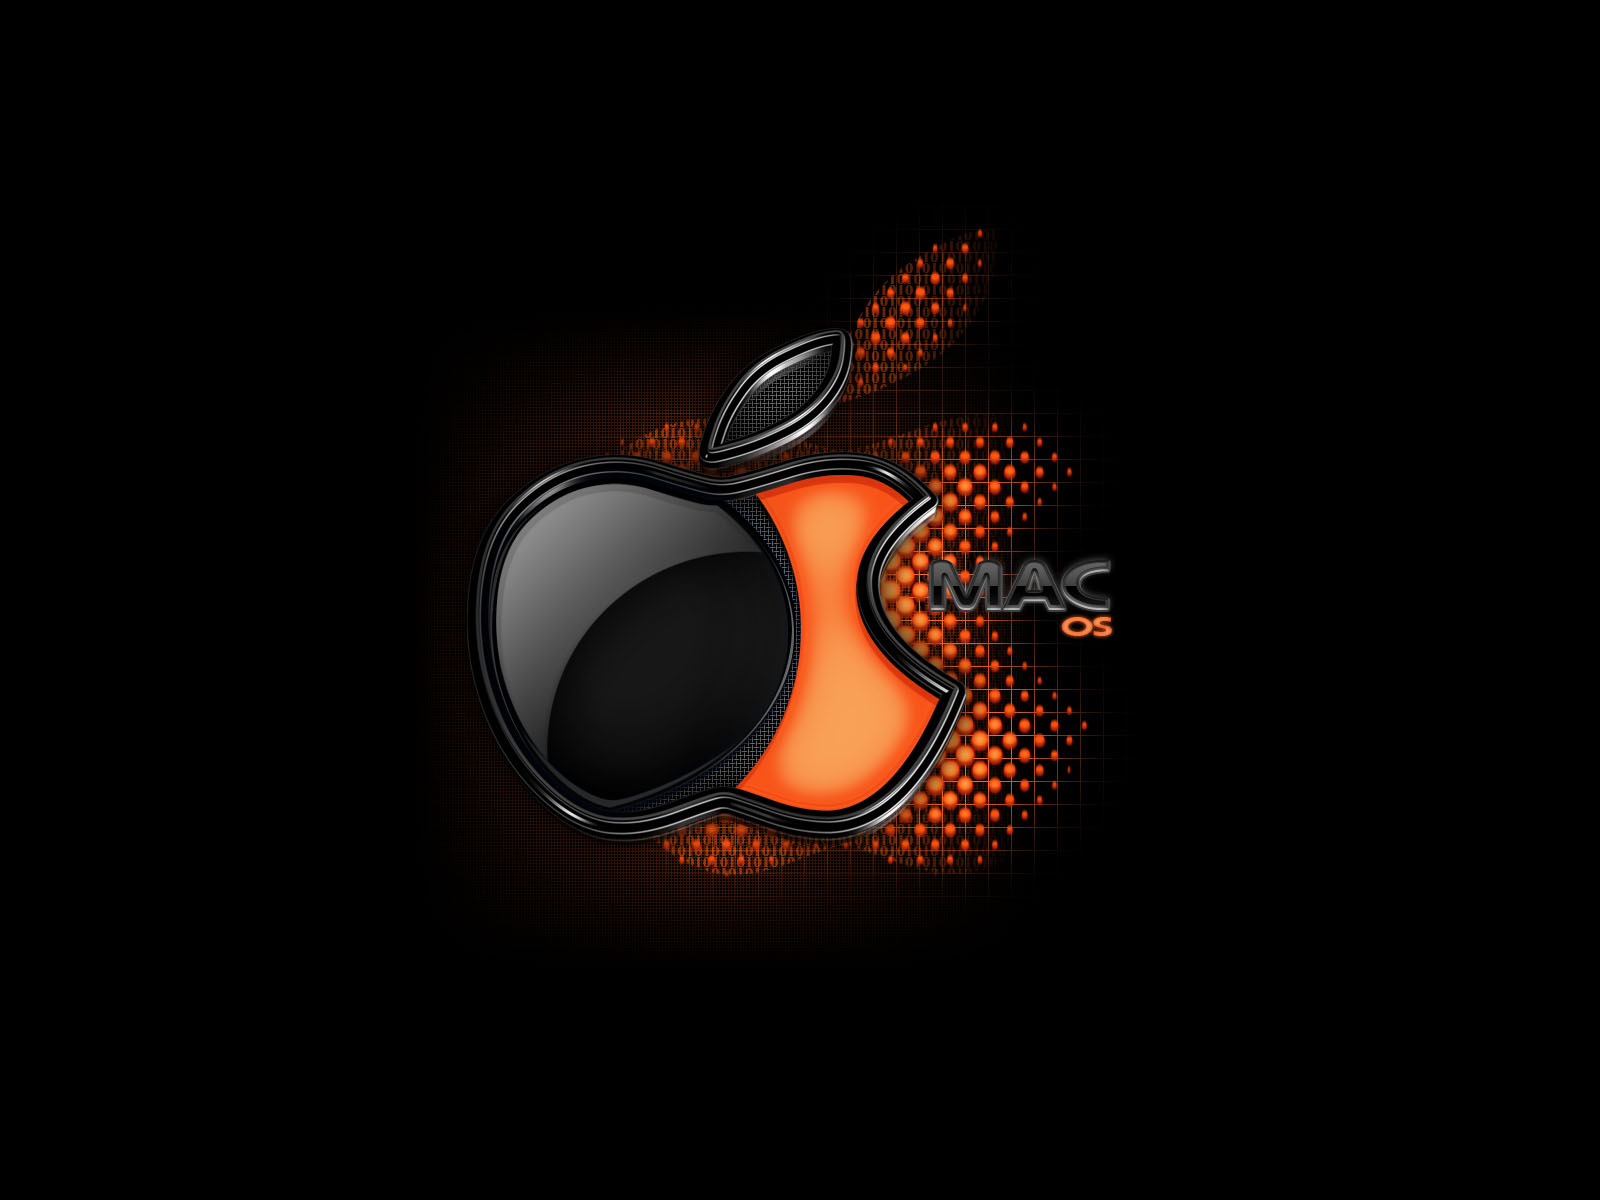 Mac Os X Simple Black Abstract Wallpaper Wallpaper